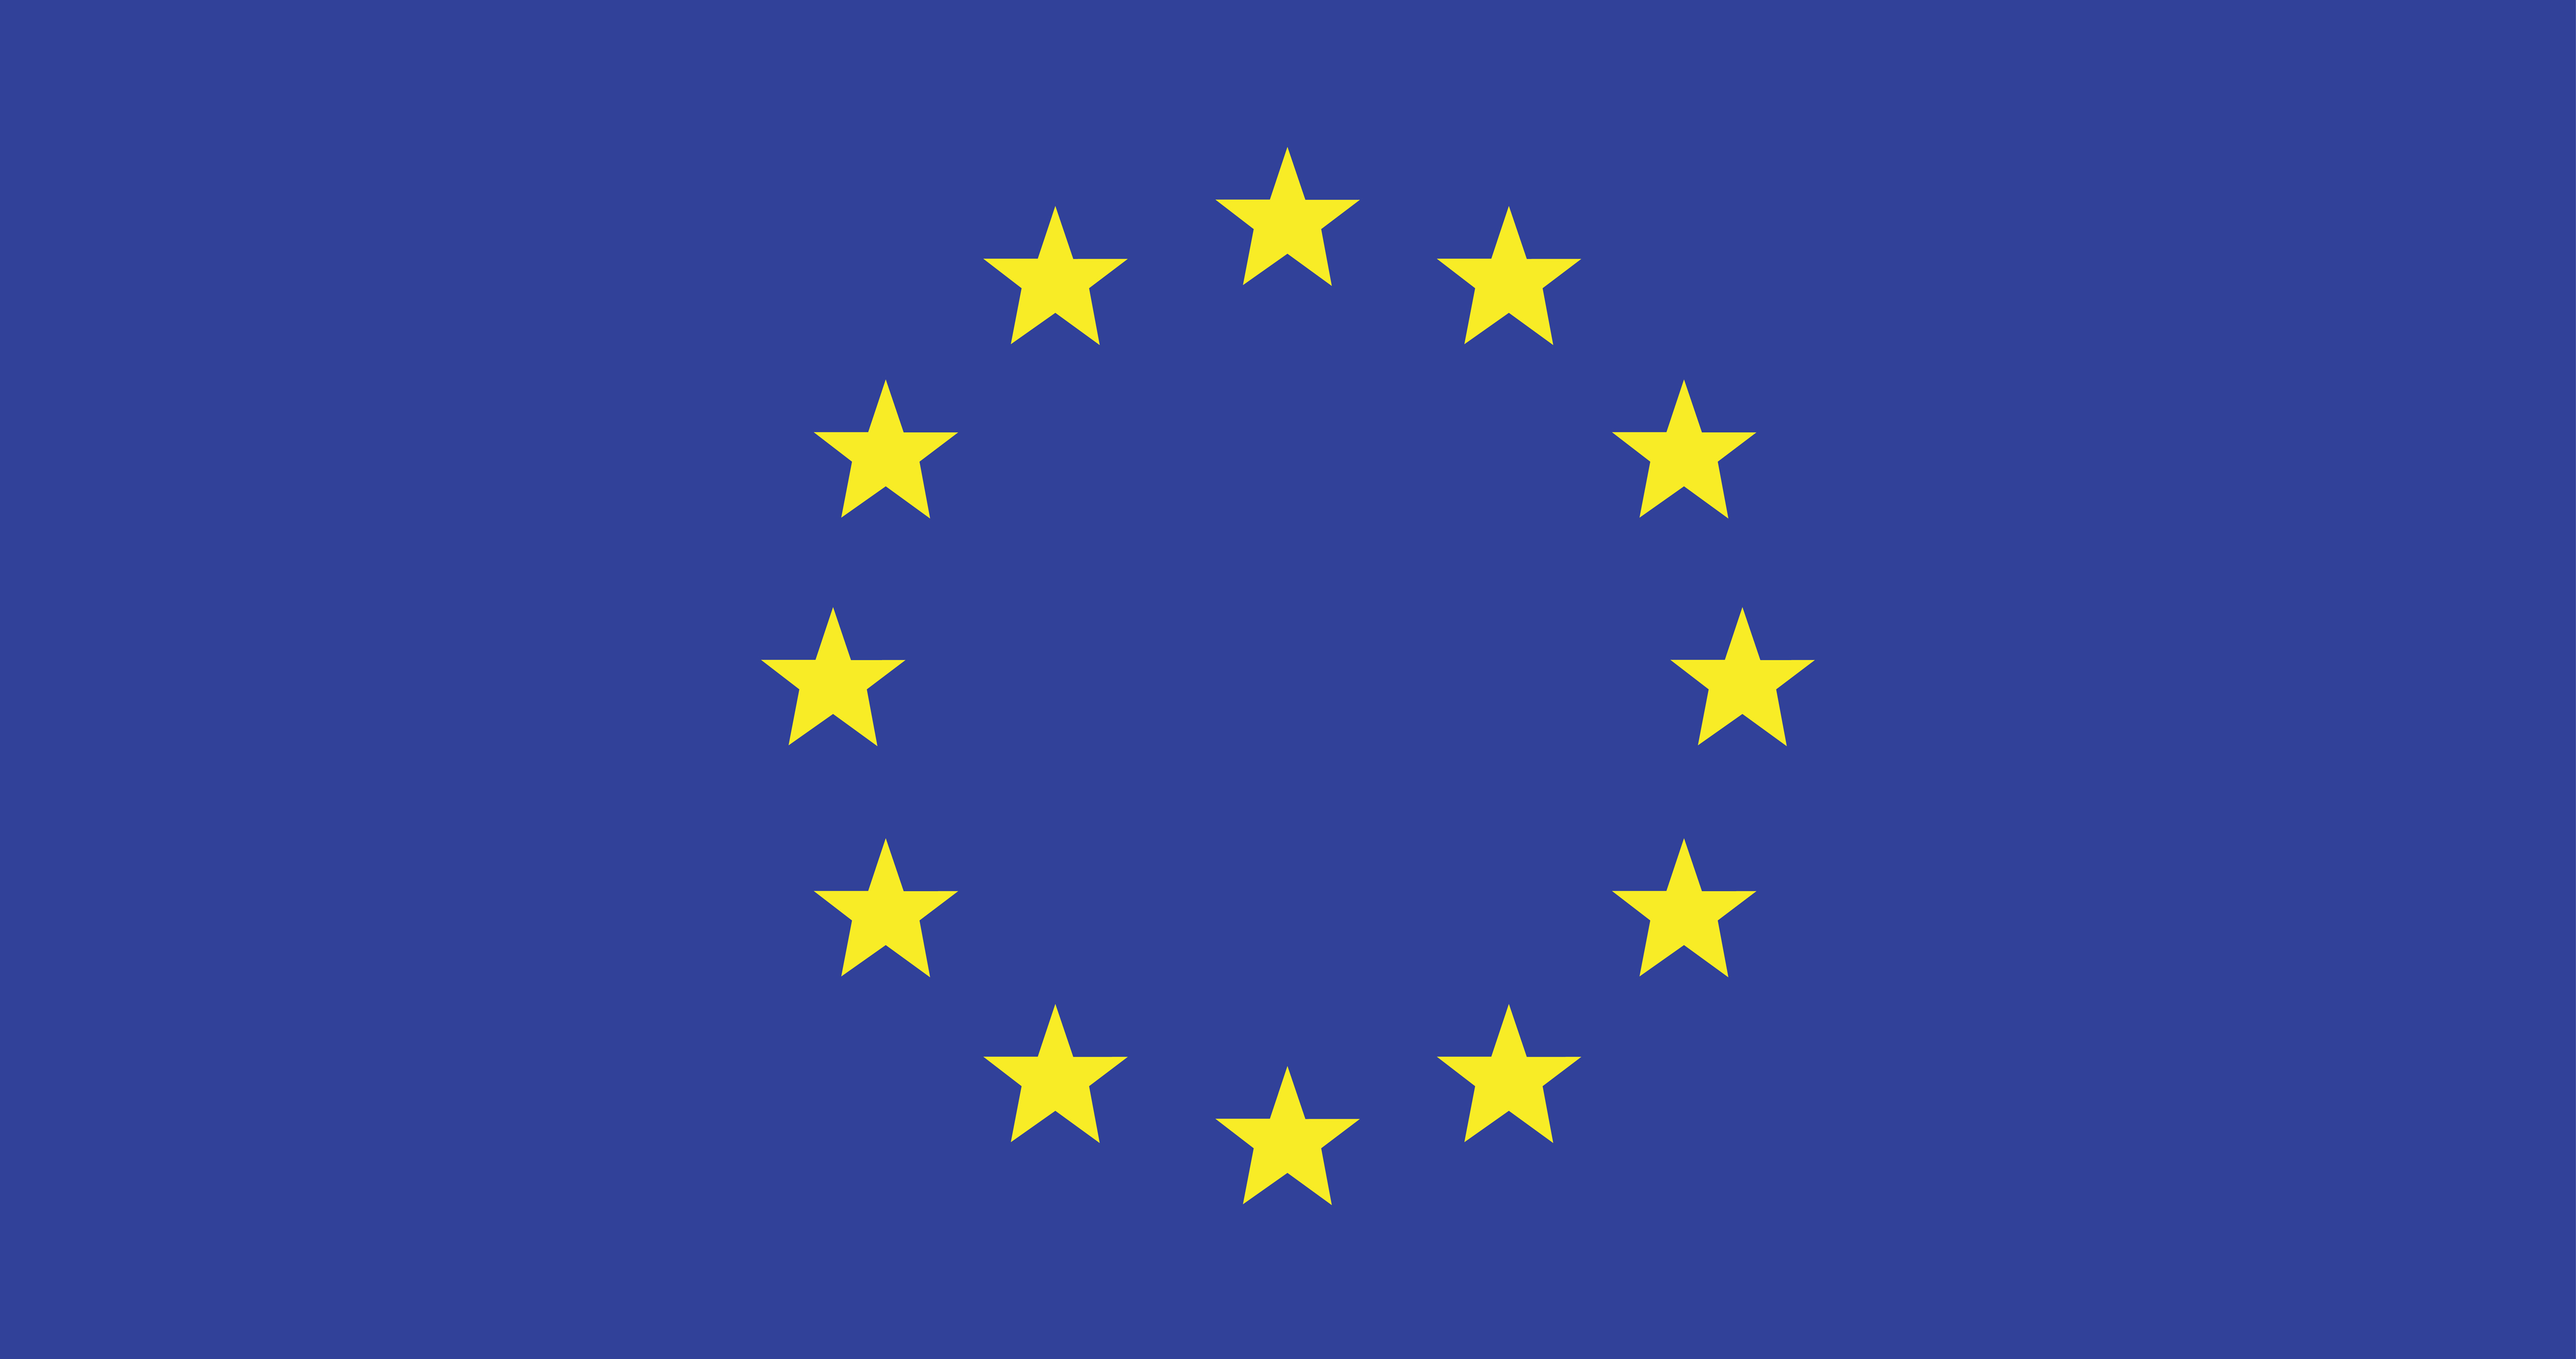 Important information for deliveries into the EU